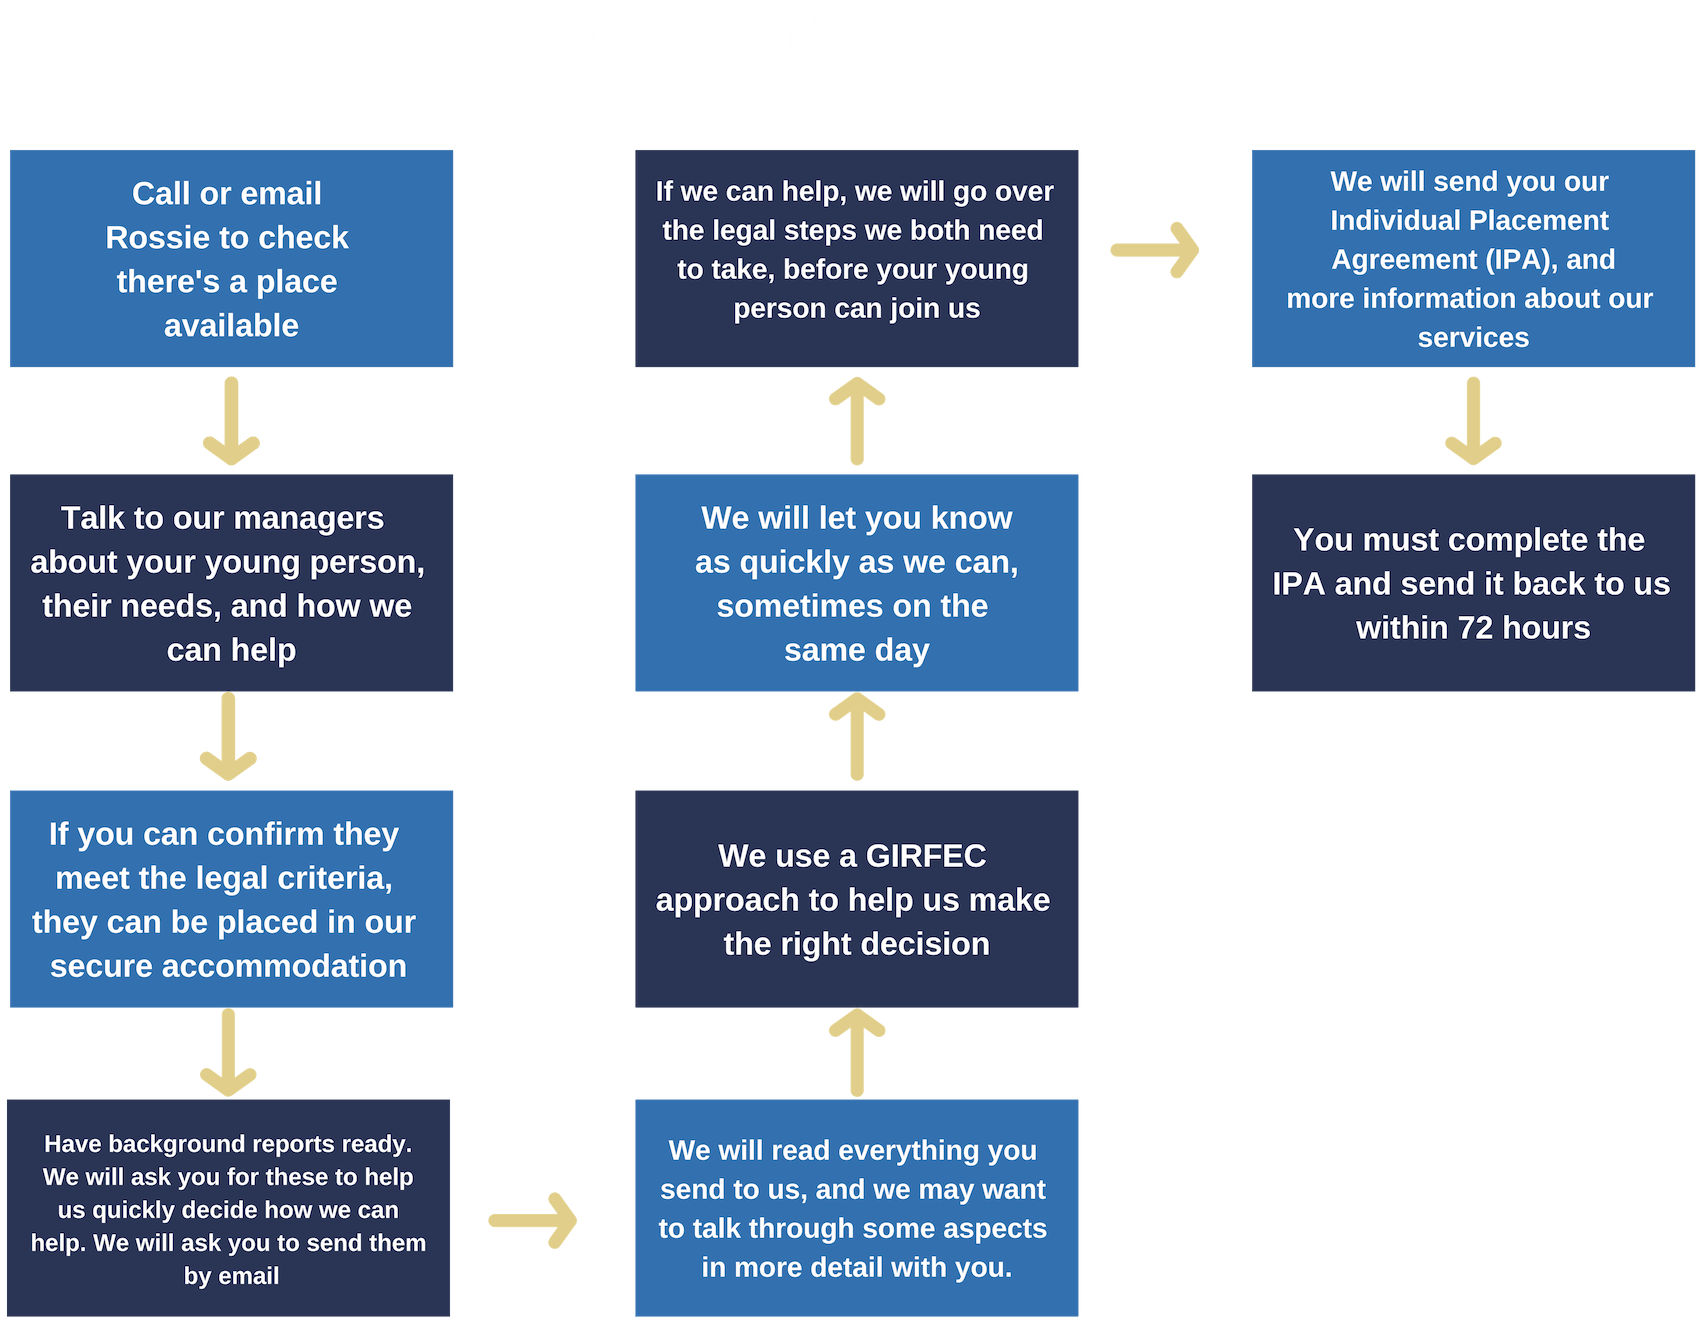 Rossie Quick Guide to Referrals